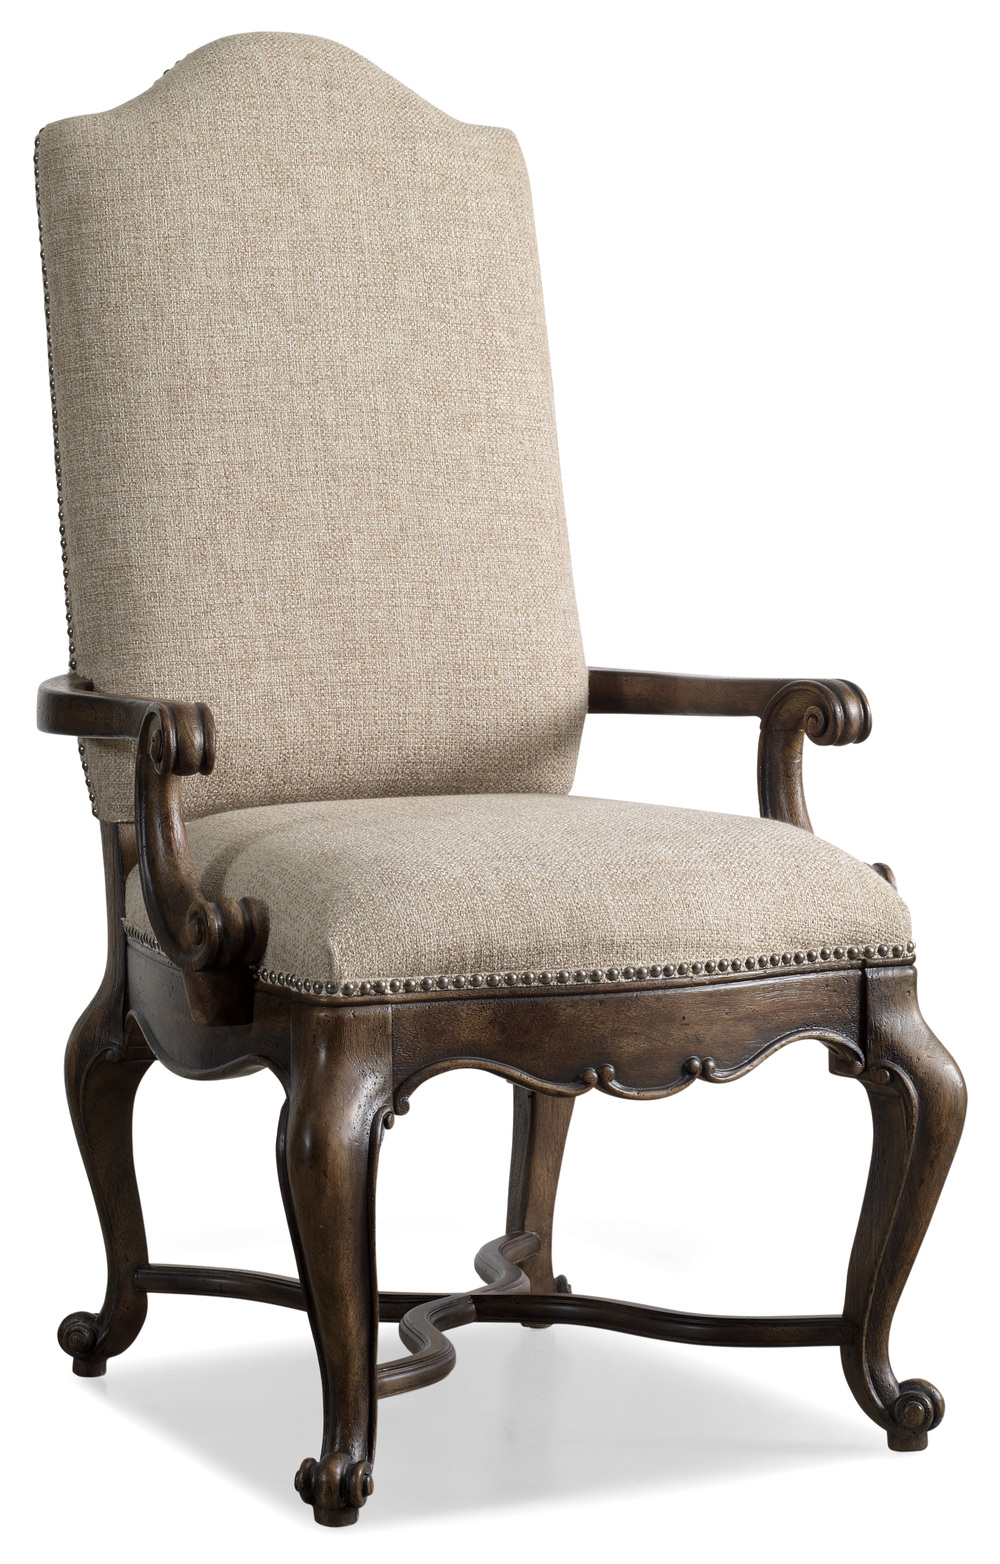 Hooker Furniture - Rhapsody Upholstered Arm Chair